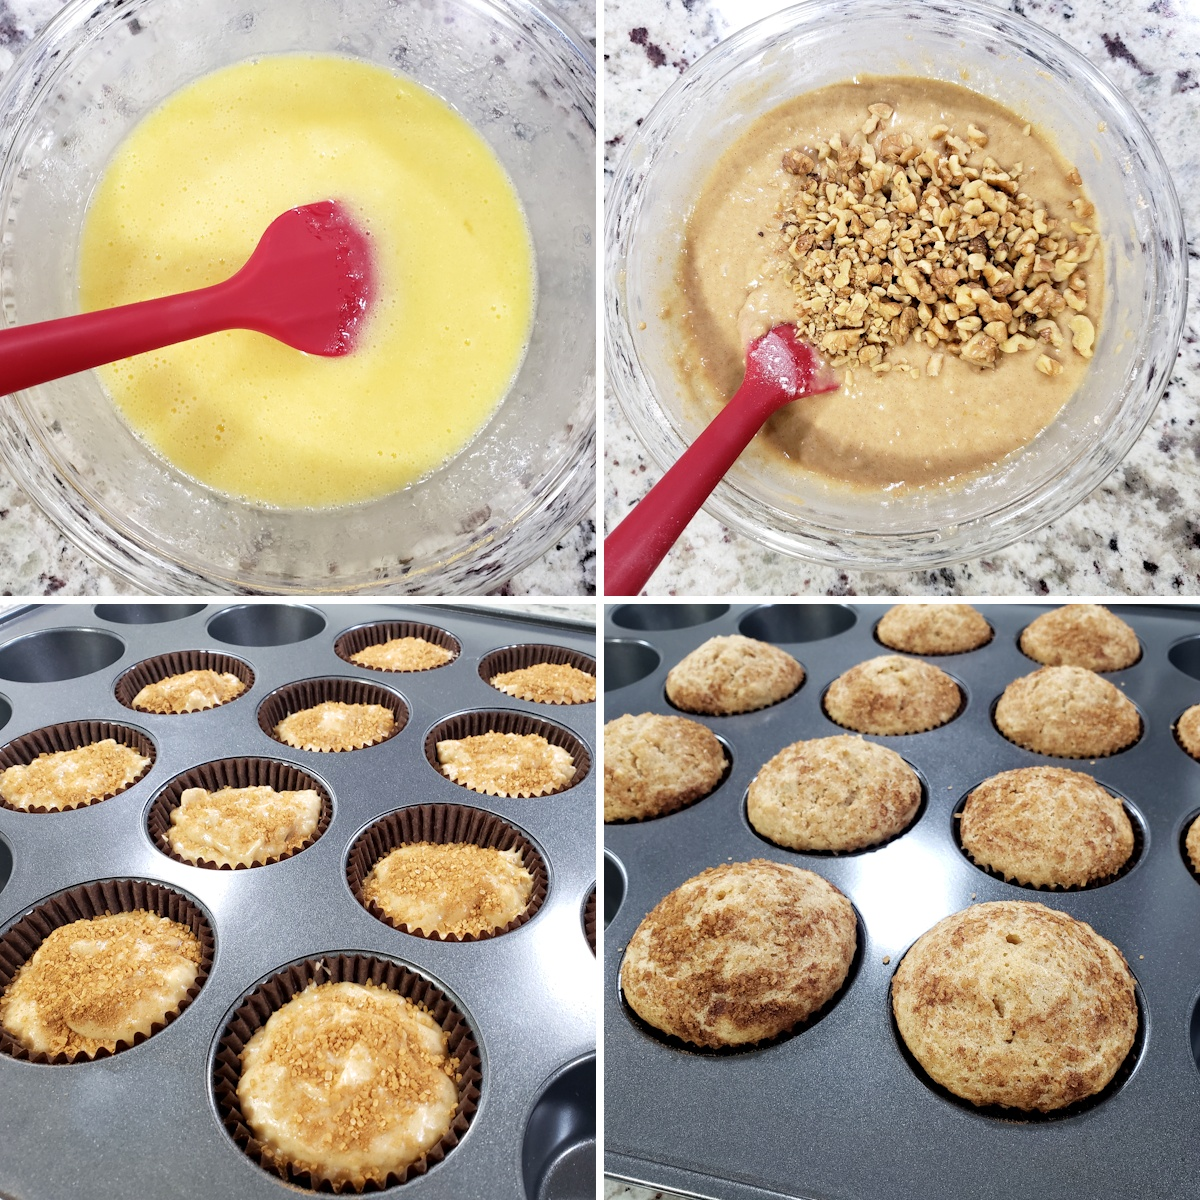 Mixing muffin batter and pouring into a baking pan.